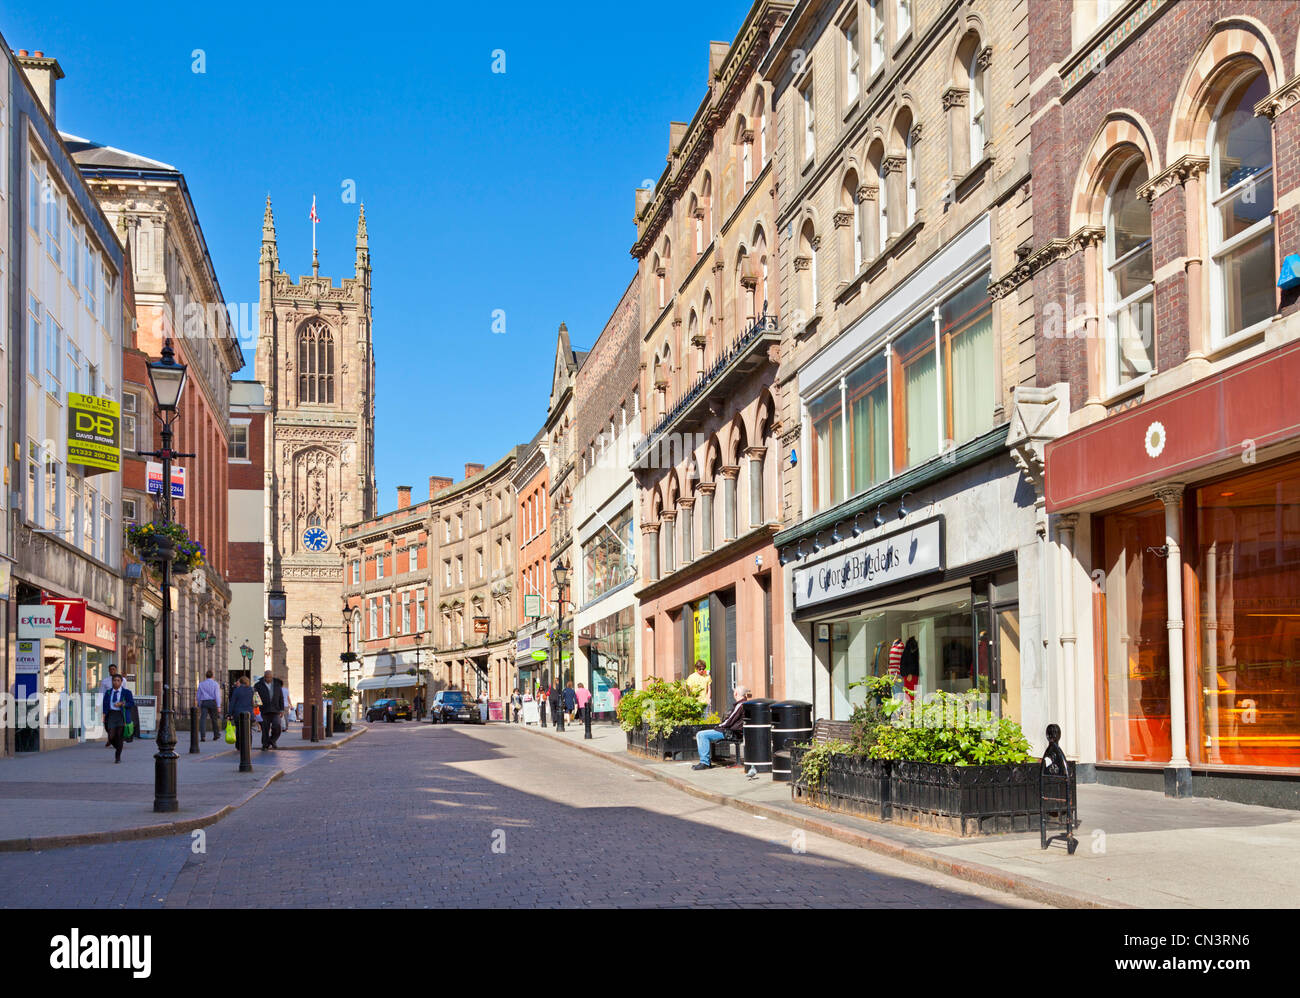 Irongate shops Derby city centre looking towards the cathedral Derby Derbyshire England UK GB EU Europe - Stock Image